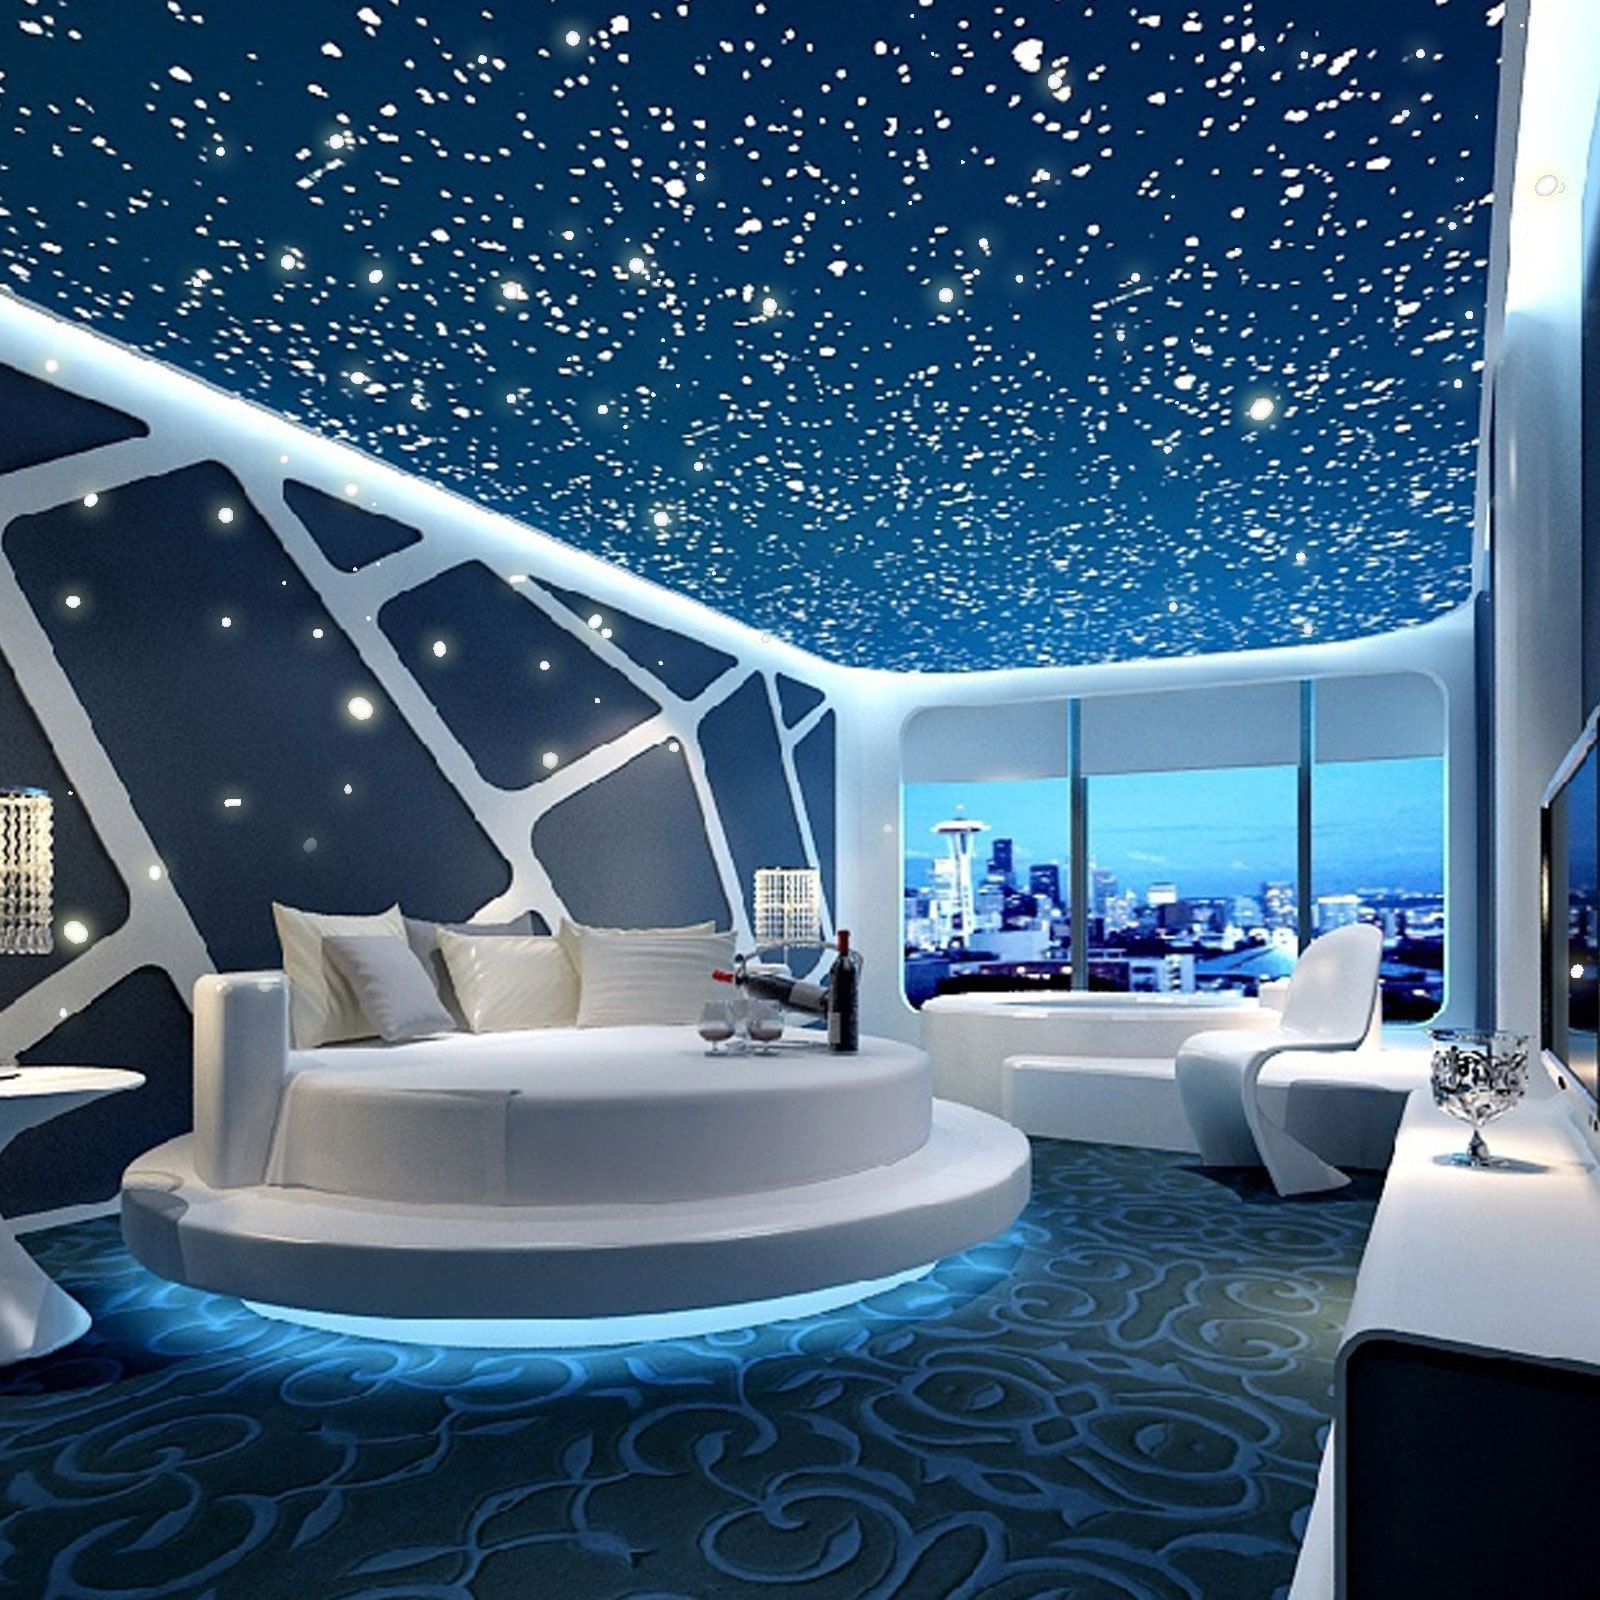 Decorative Decals Ebay Home Furniture Diy Space Themed Bedroom False Ceiling Design Dream Rooms Space themed living room